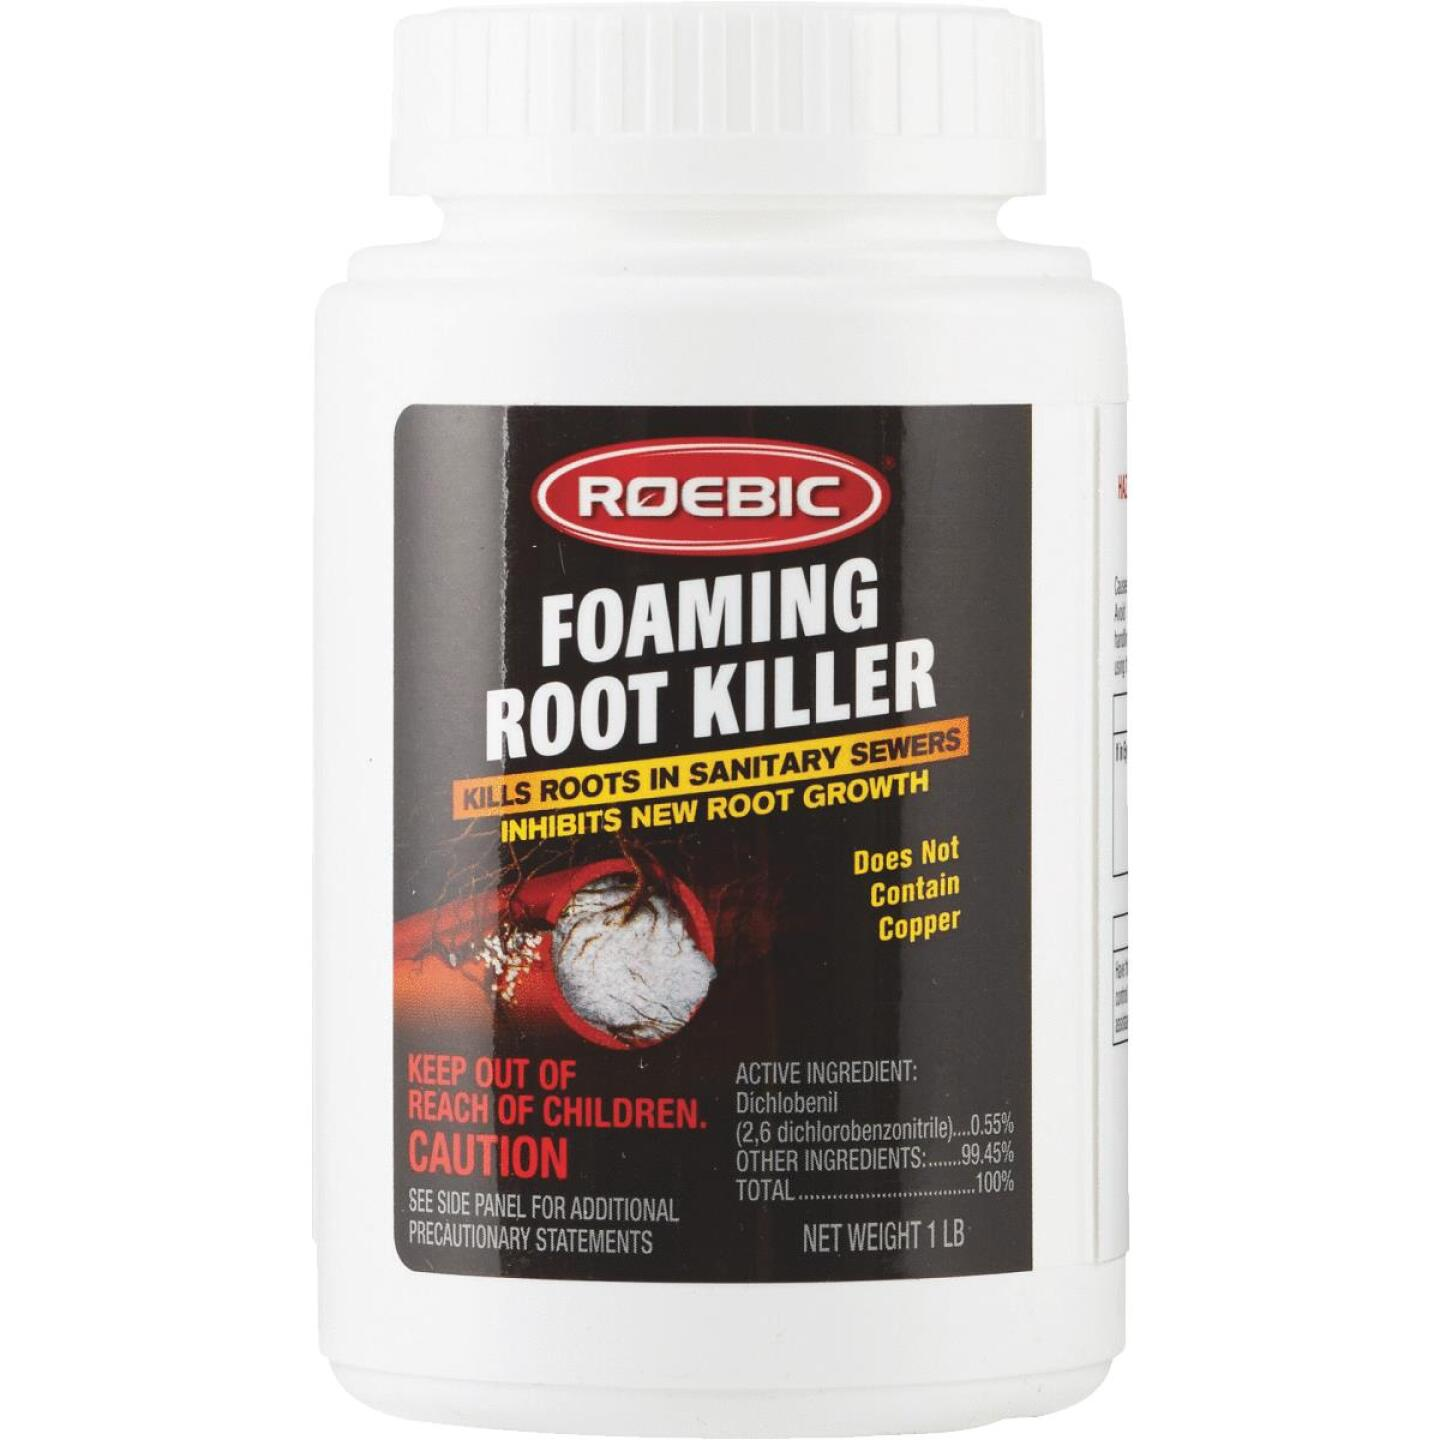 Roebic 1 Lb. Foam Root Killer Image 1